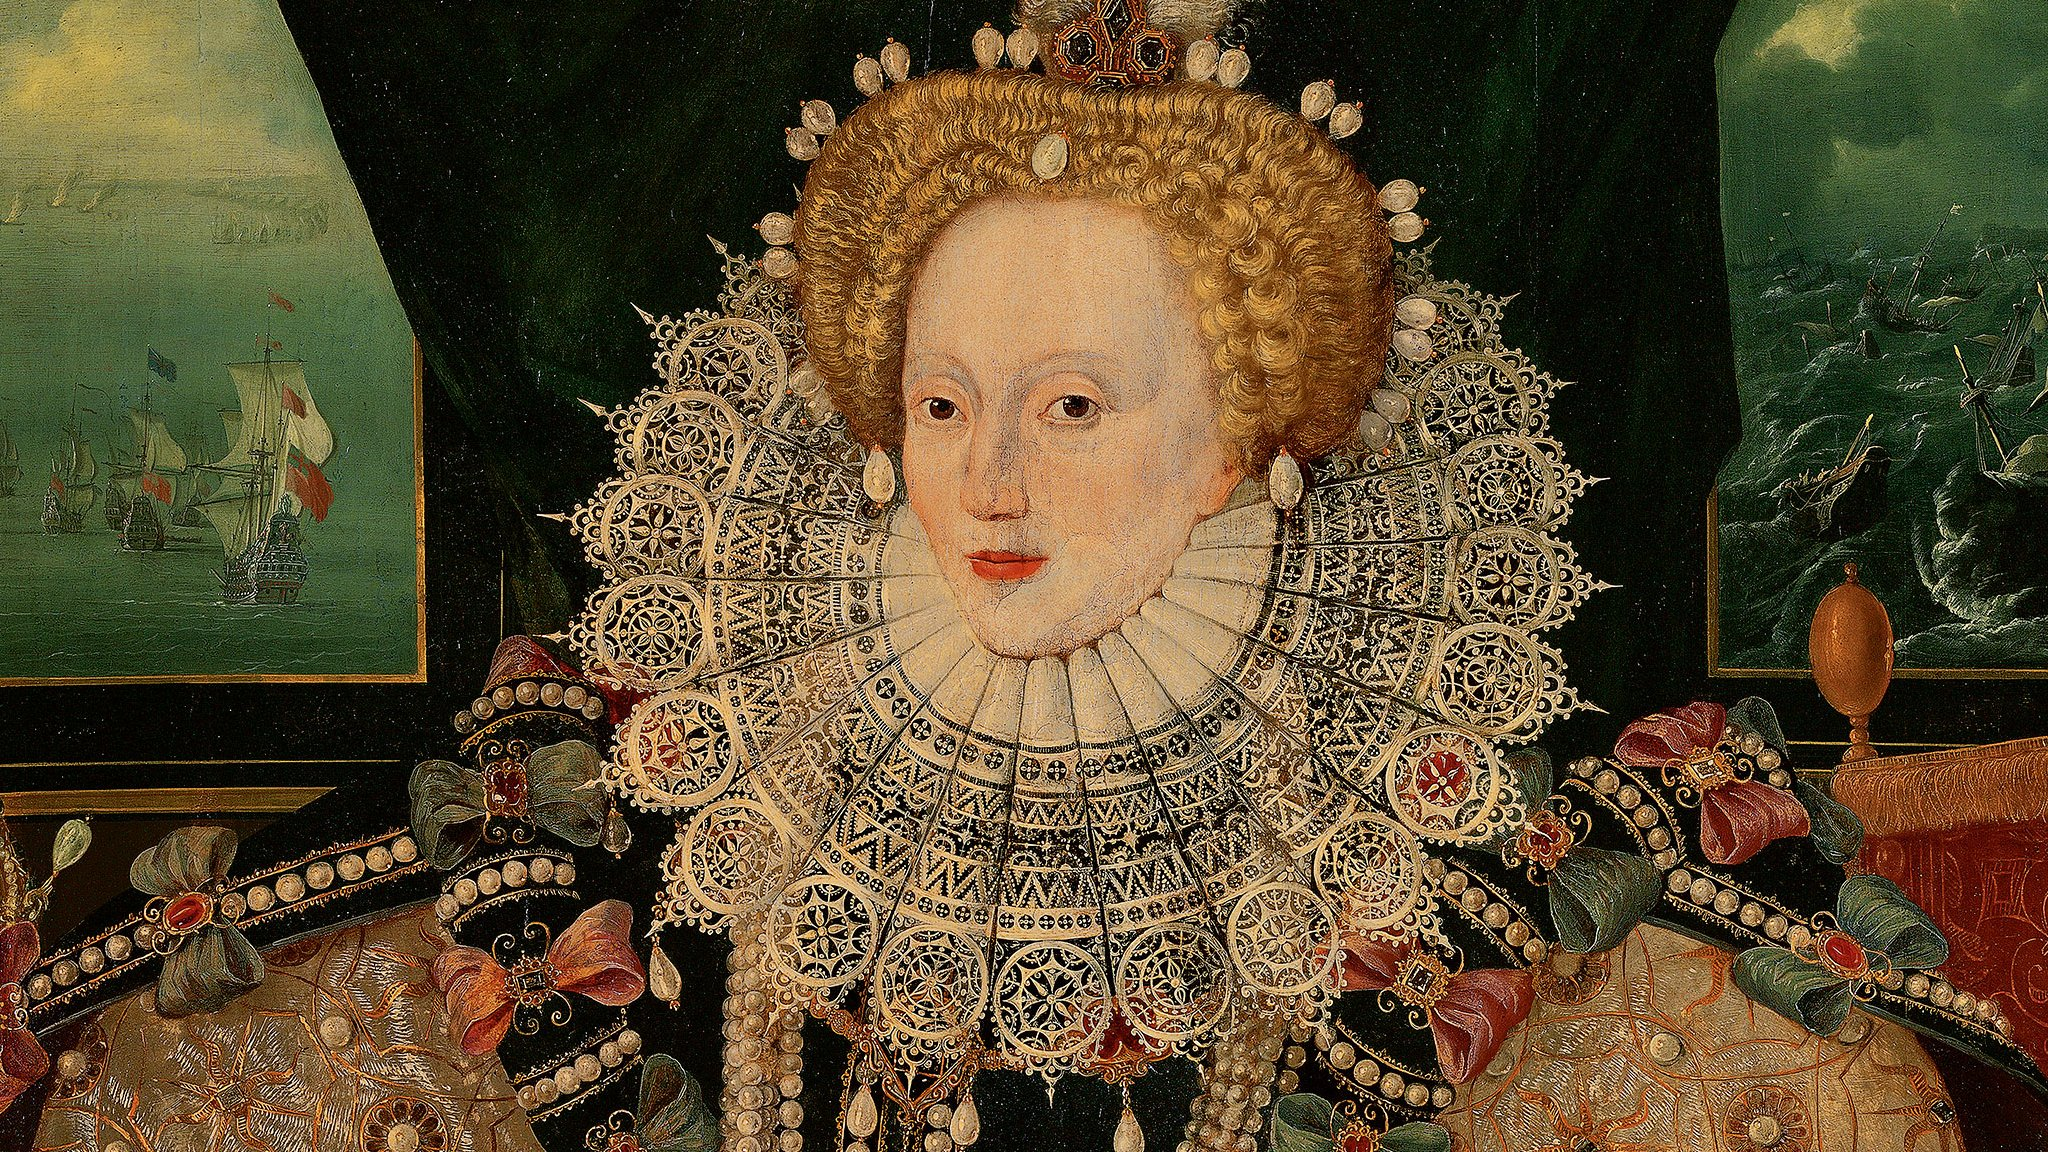 Elizabeth I Armada portrait saved with help of 8,000 donors